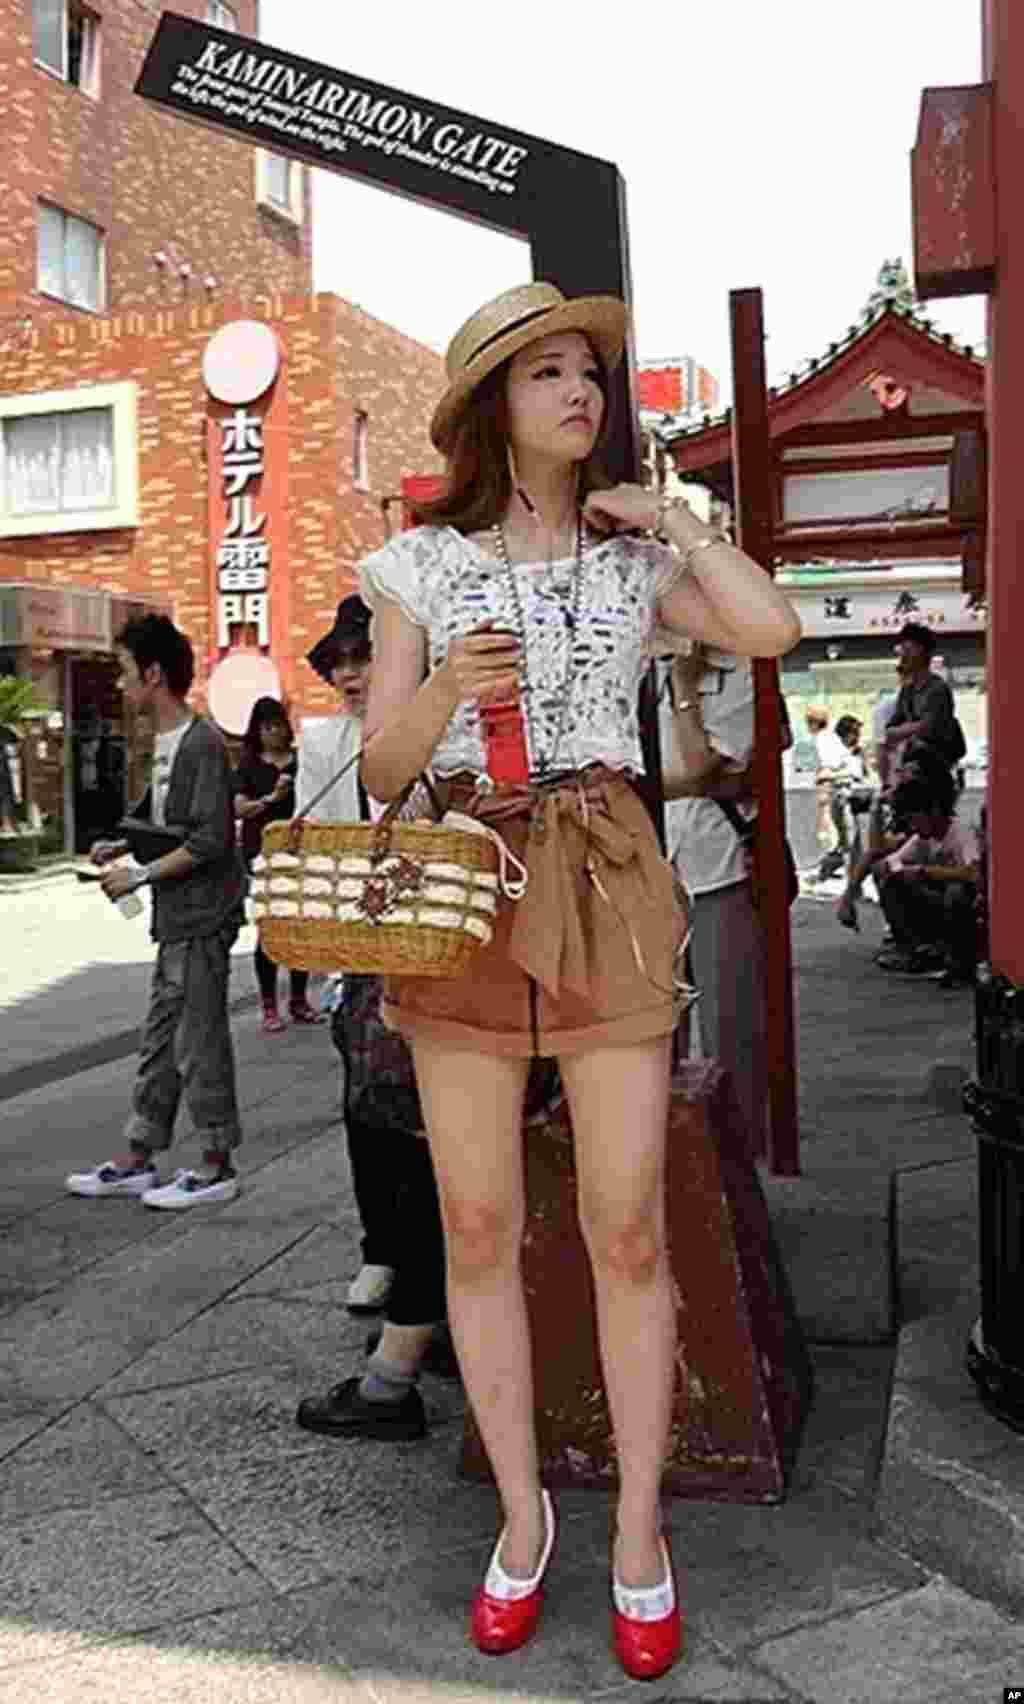 A woman waiting for a friend next to Kaminari-mon.